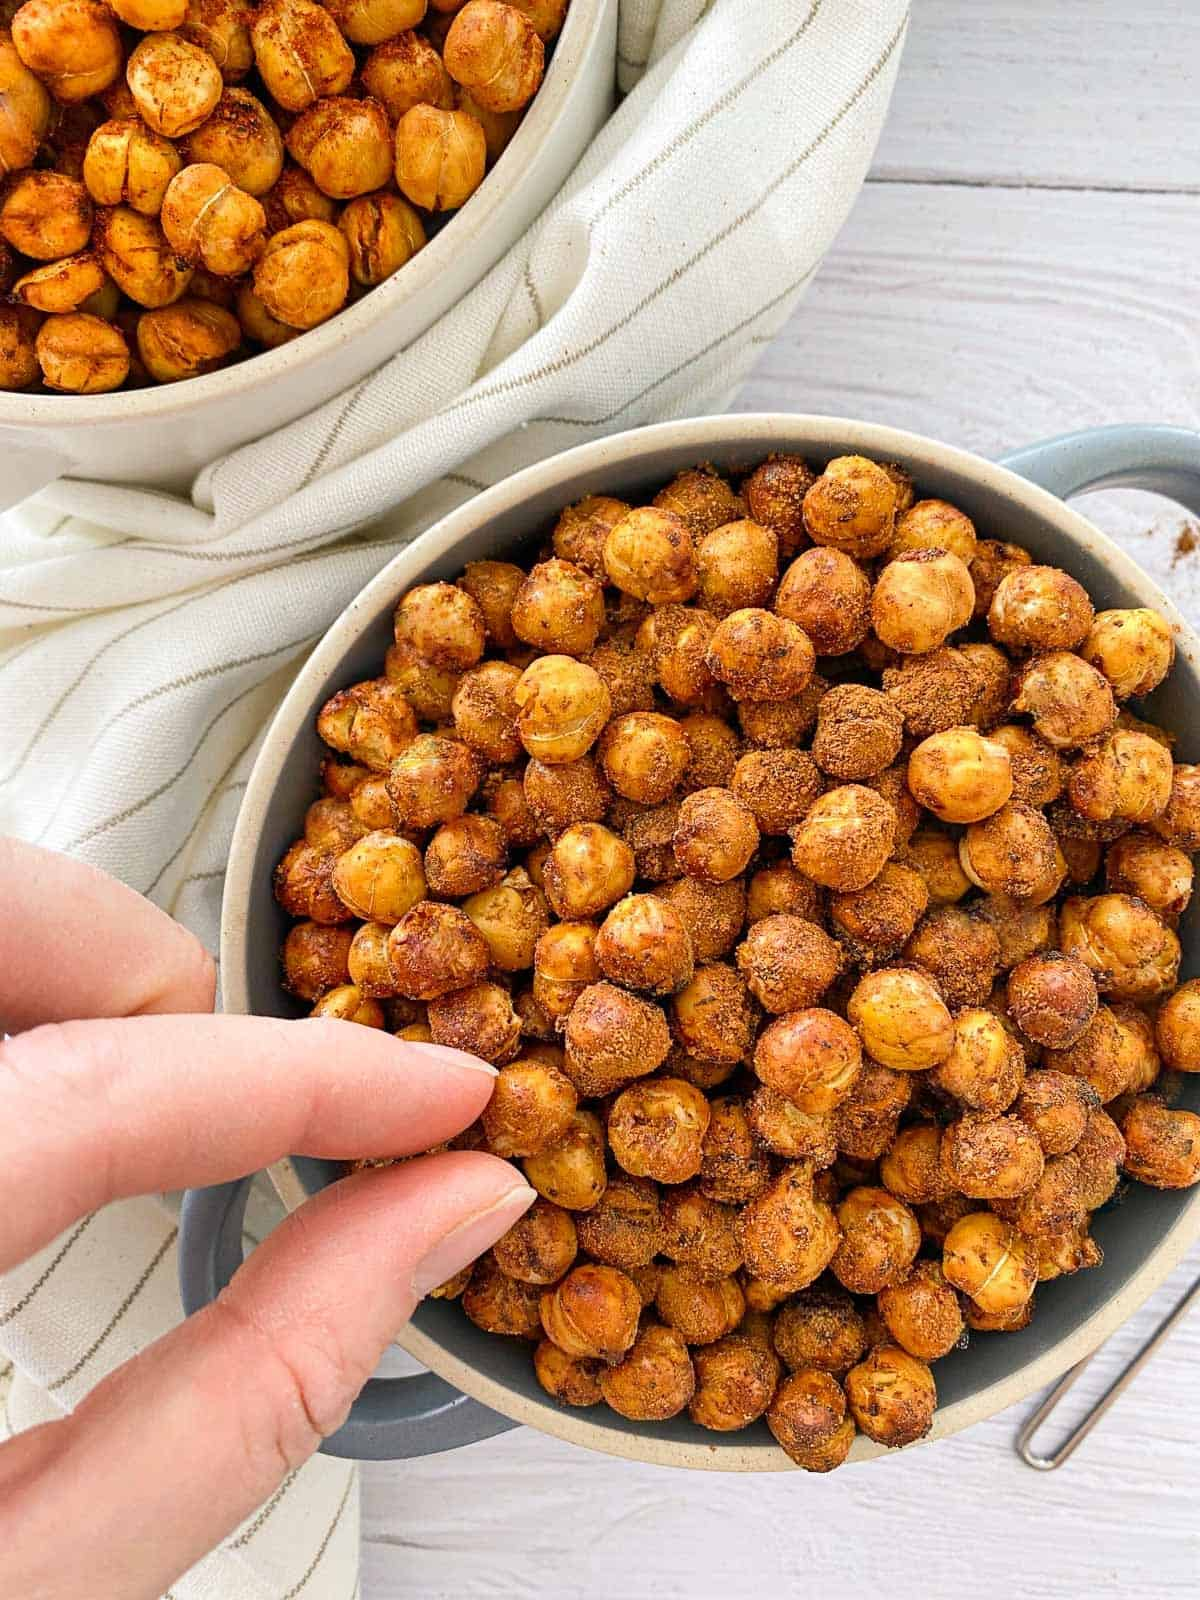 Fingers grabbing a chickpea from bowl of air fried chickpeas.